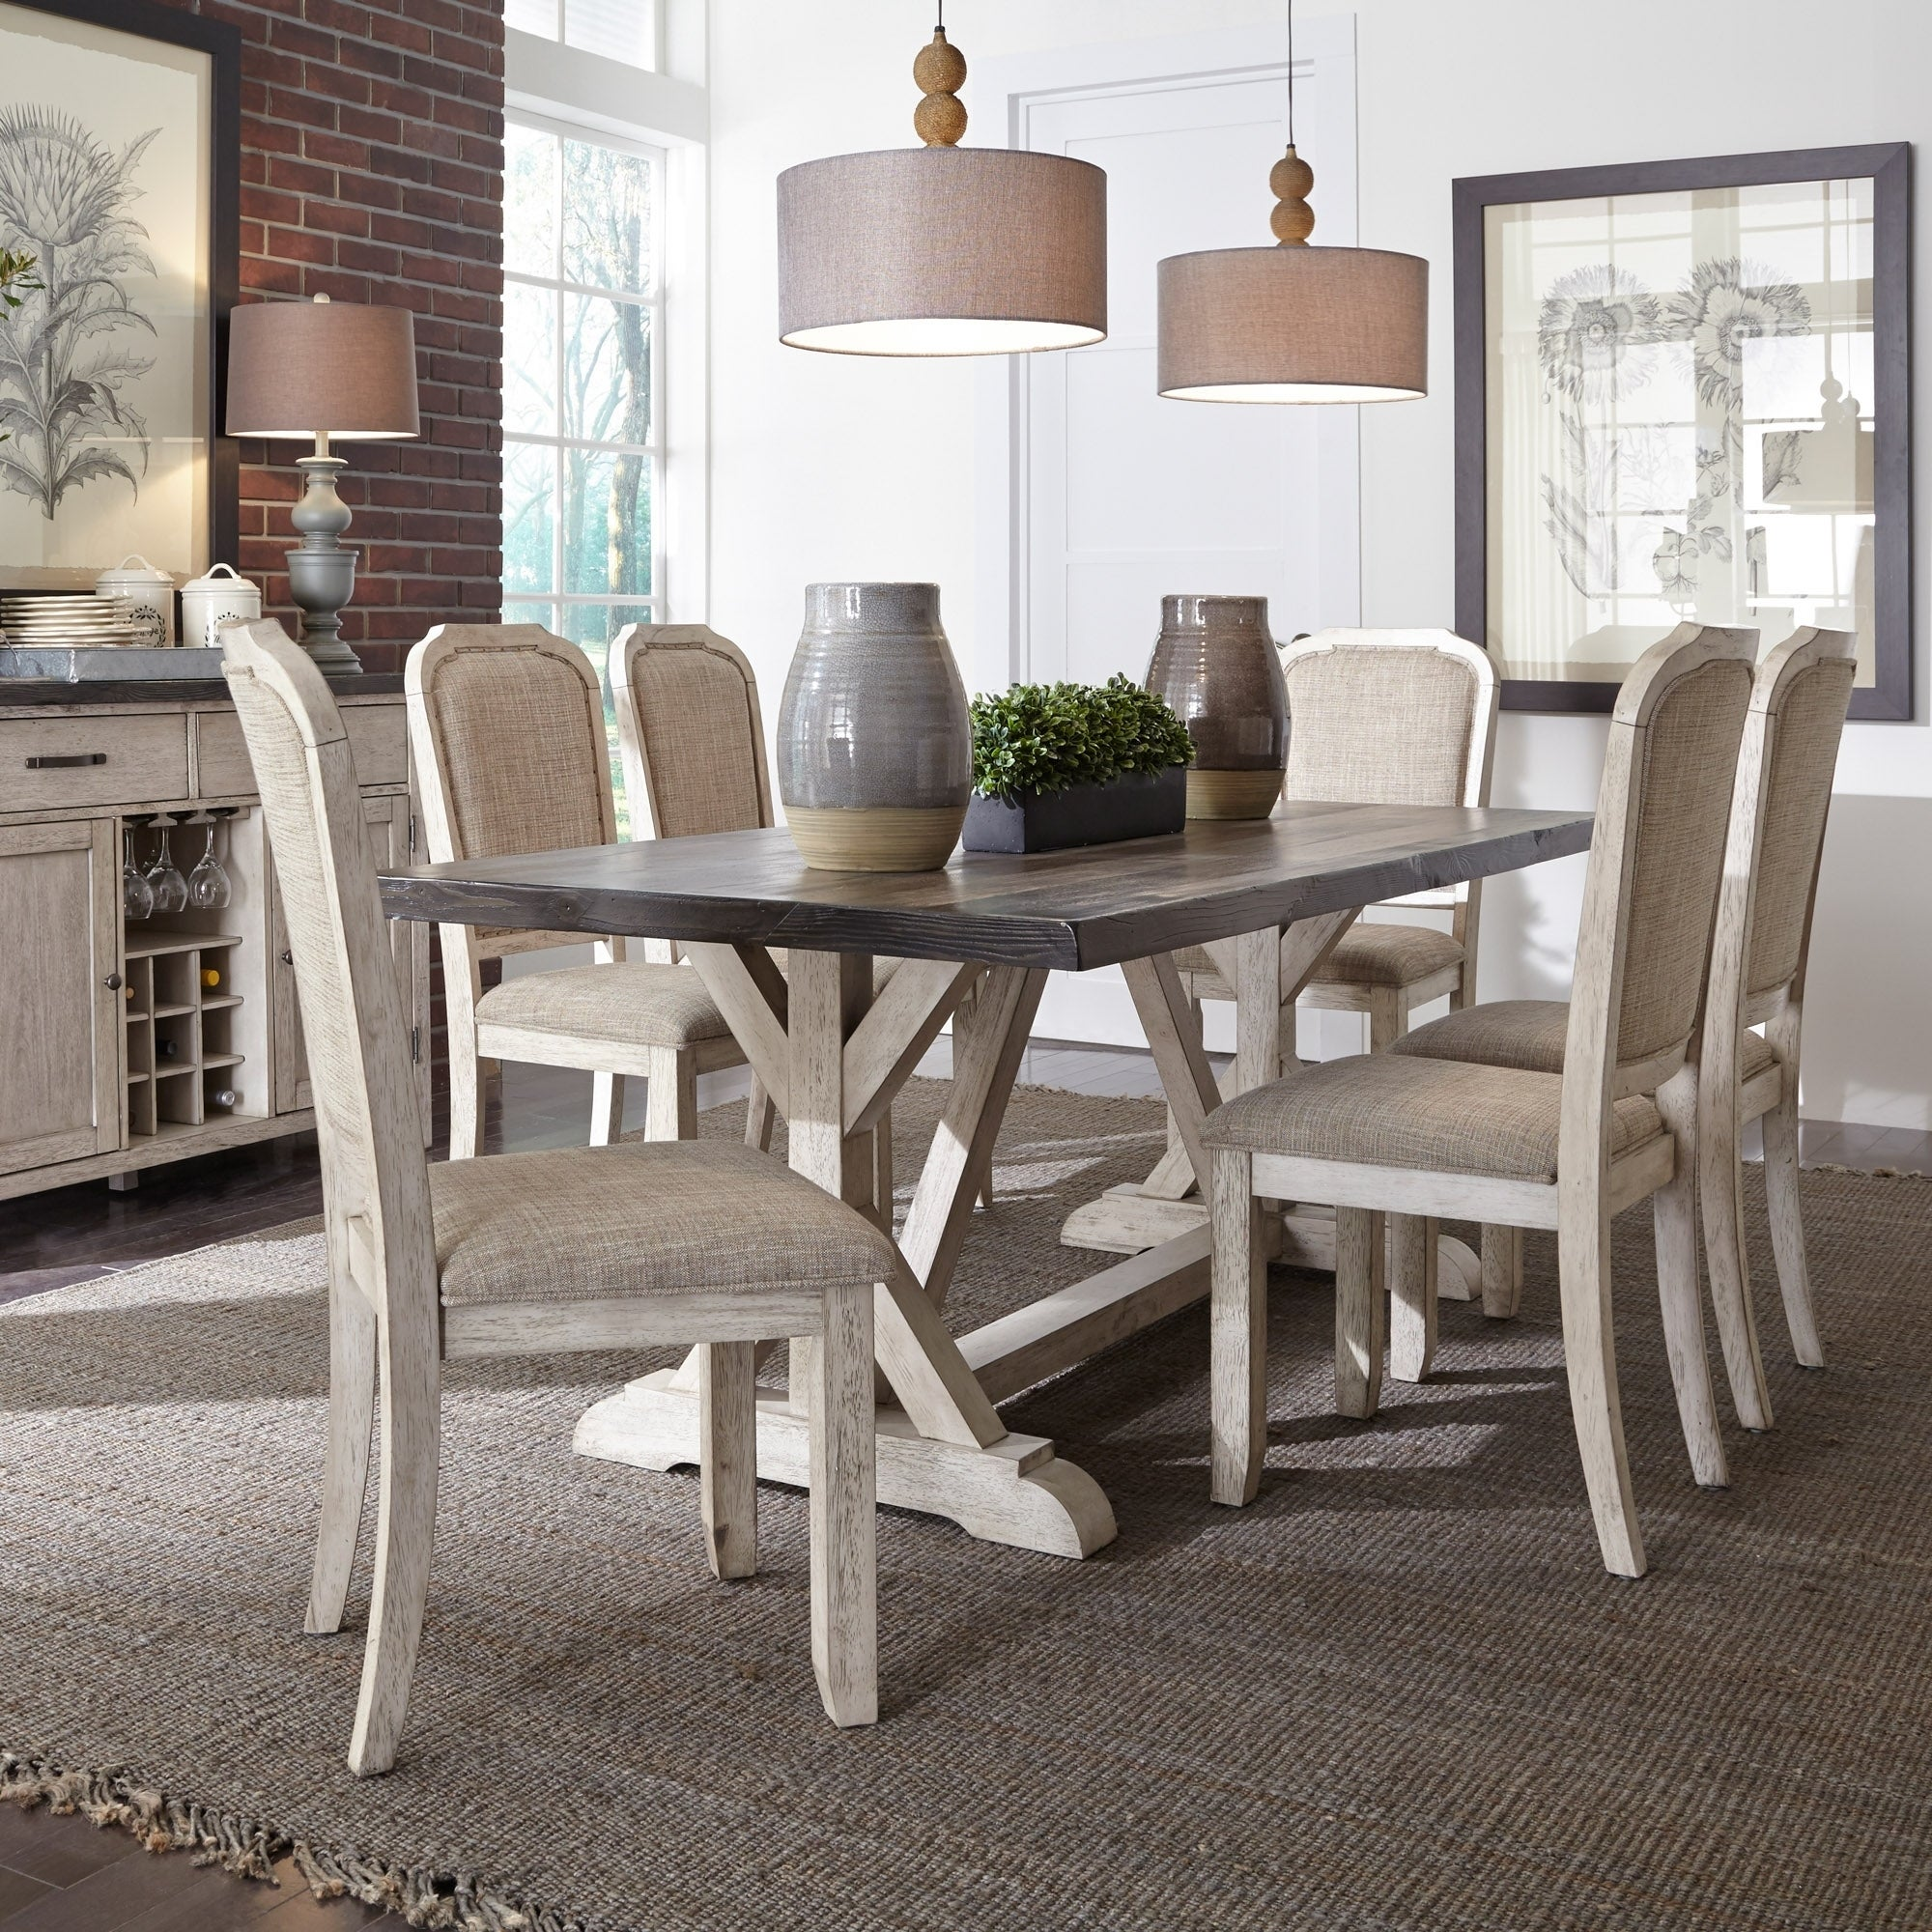 Shop Willowrun Rustic White And Grey 7 Piece Trestle Table Dining